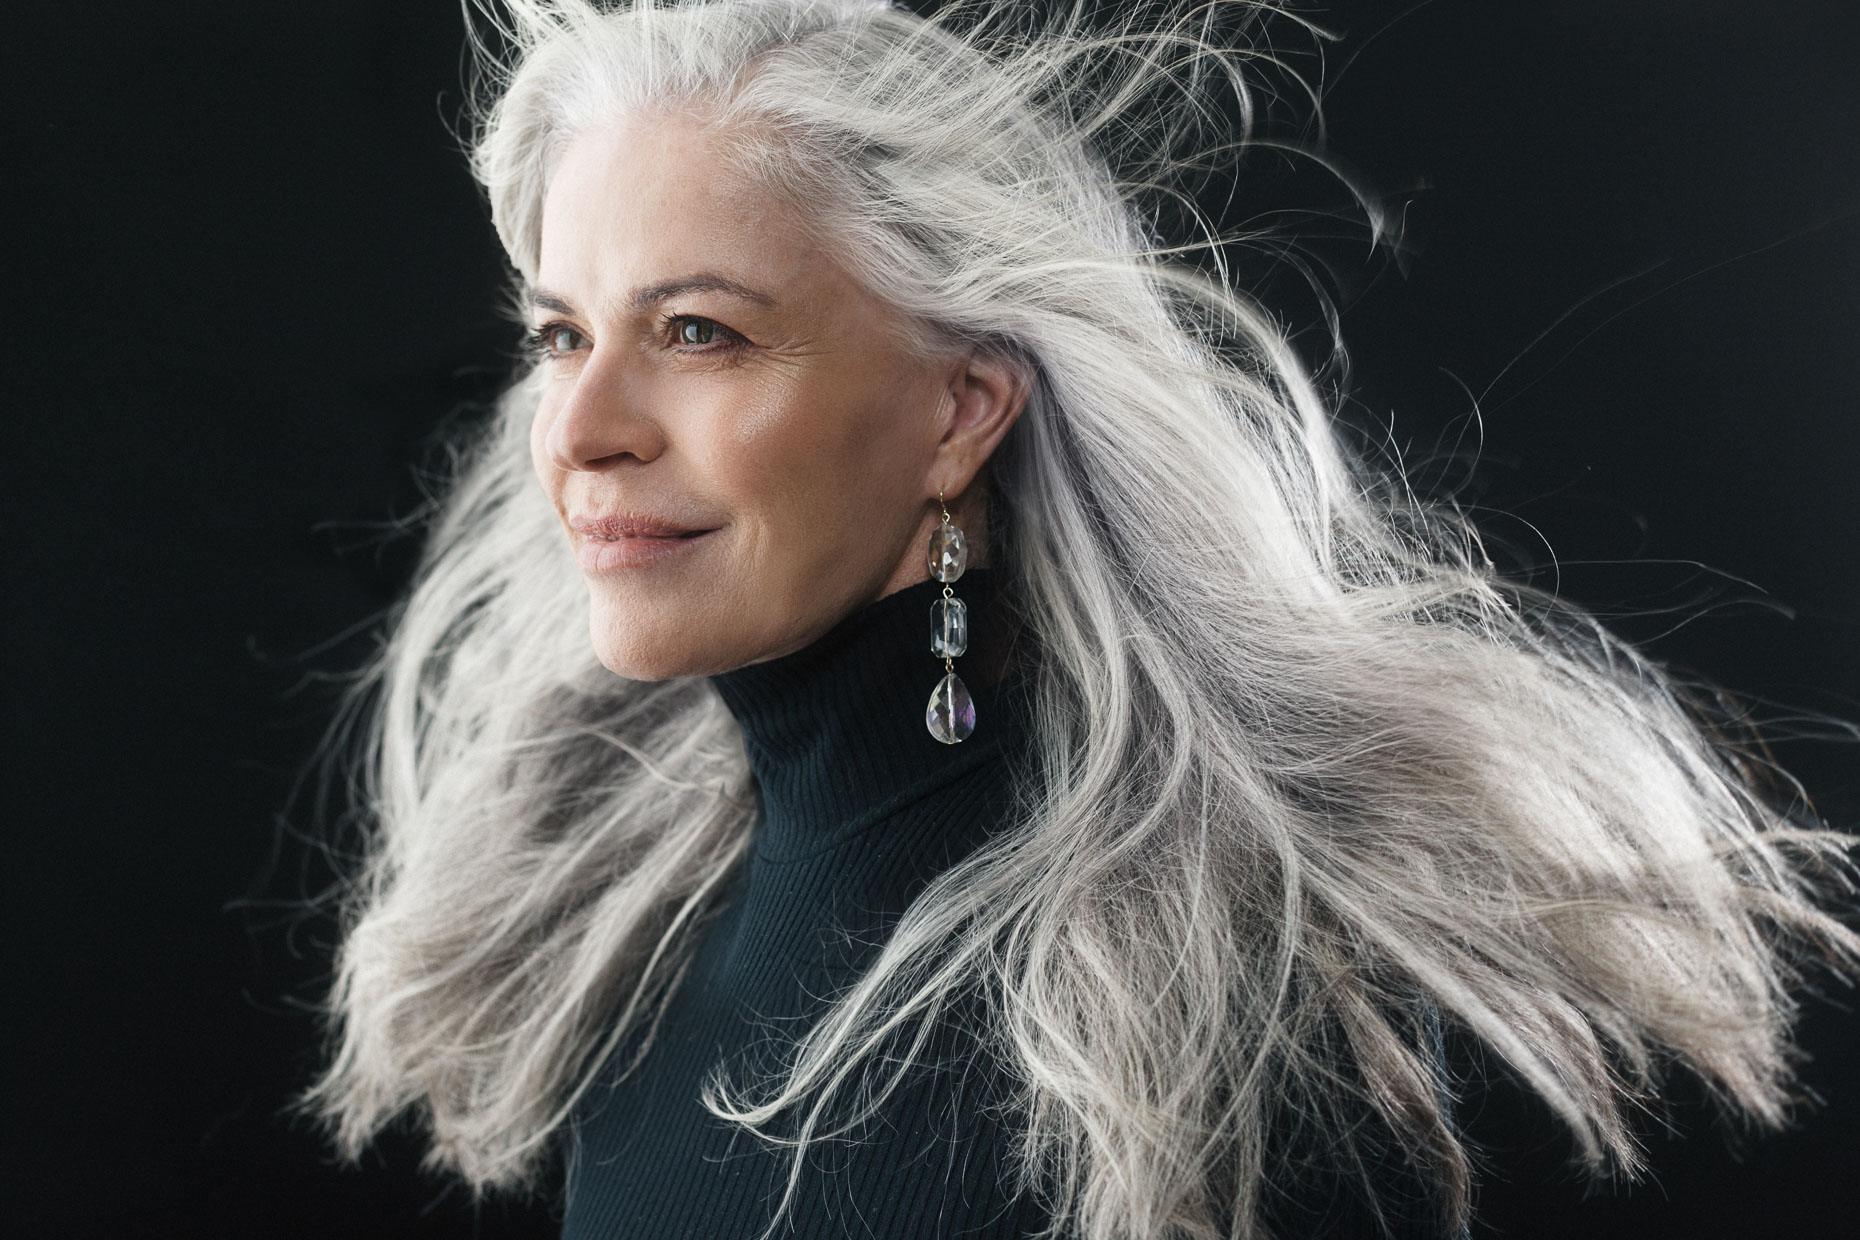 San Francisco portrait photographer - woman with long flowing grey hair.